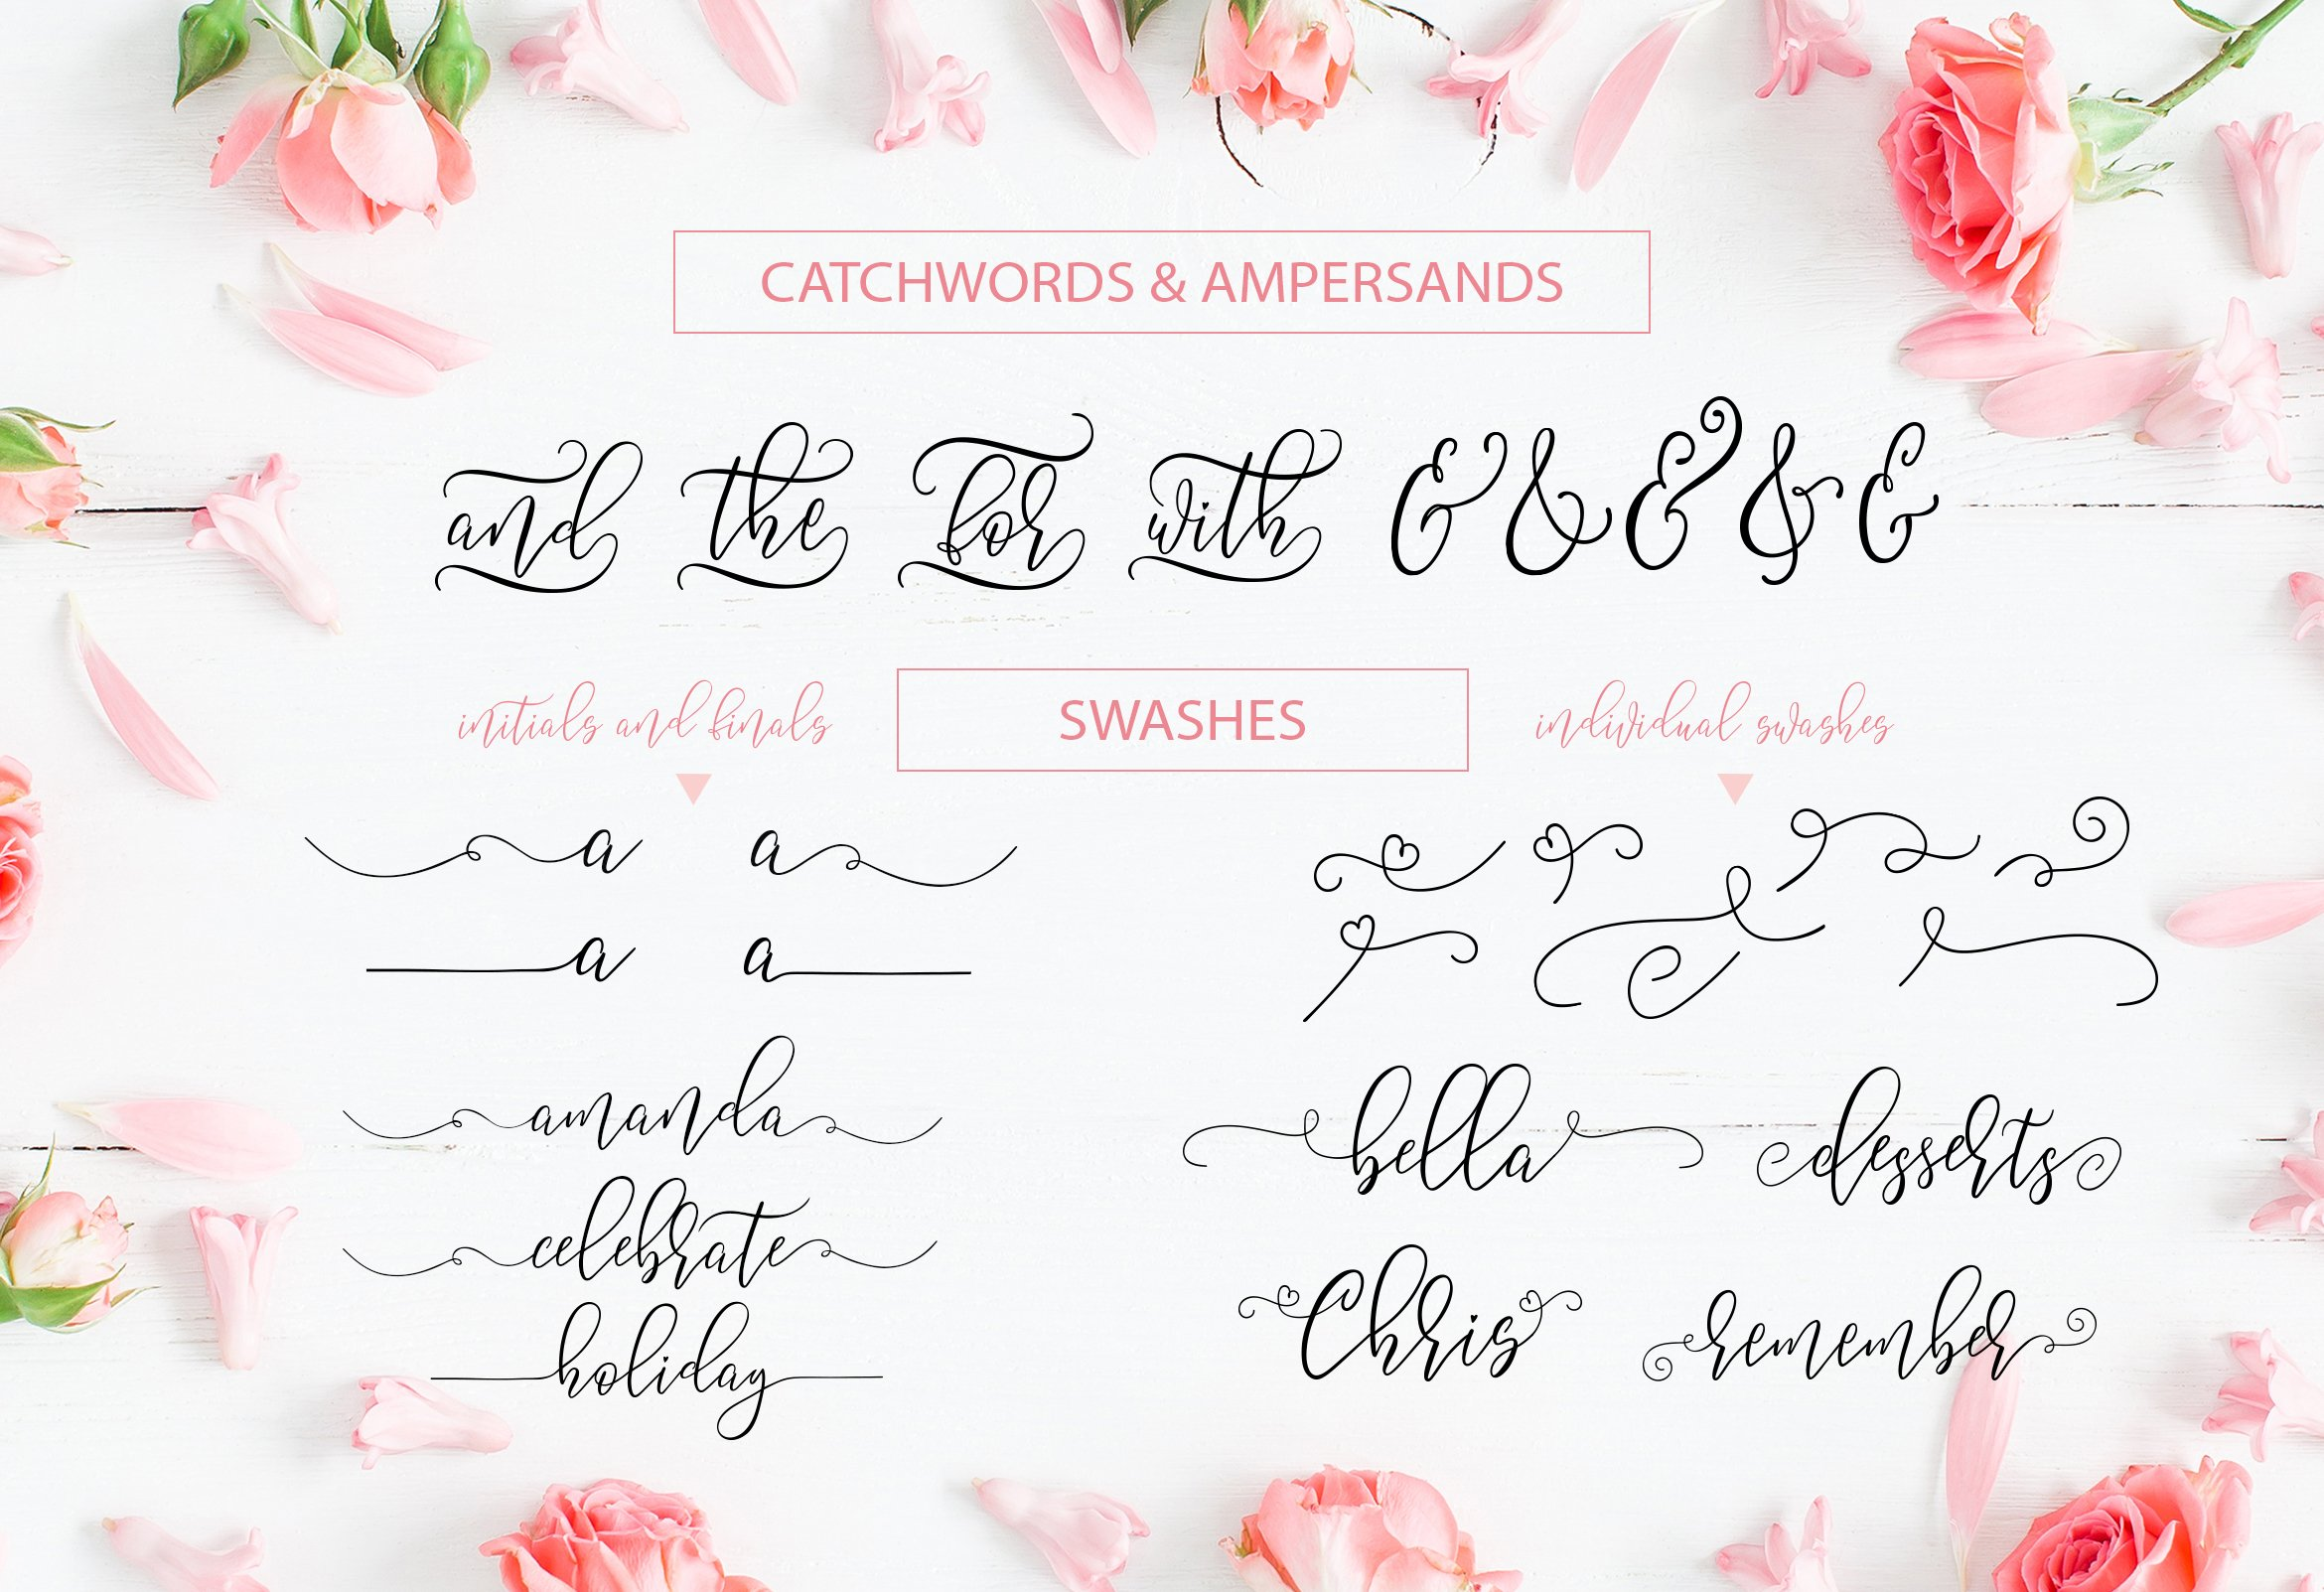 Summery Handwritten Calligraphy Font example image 6